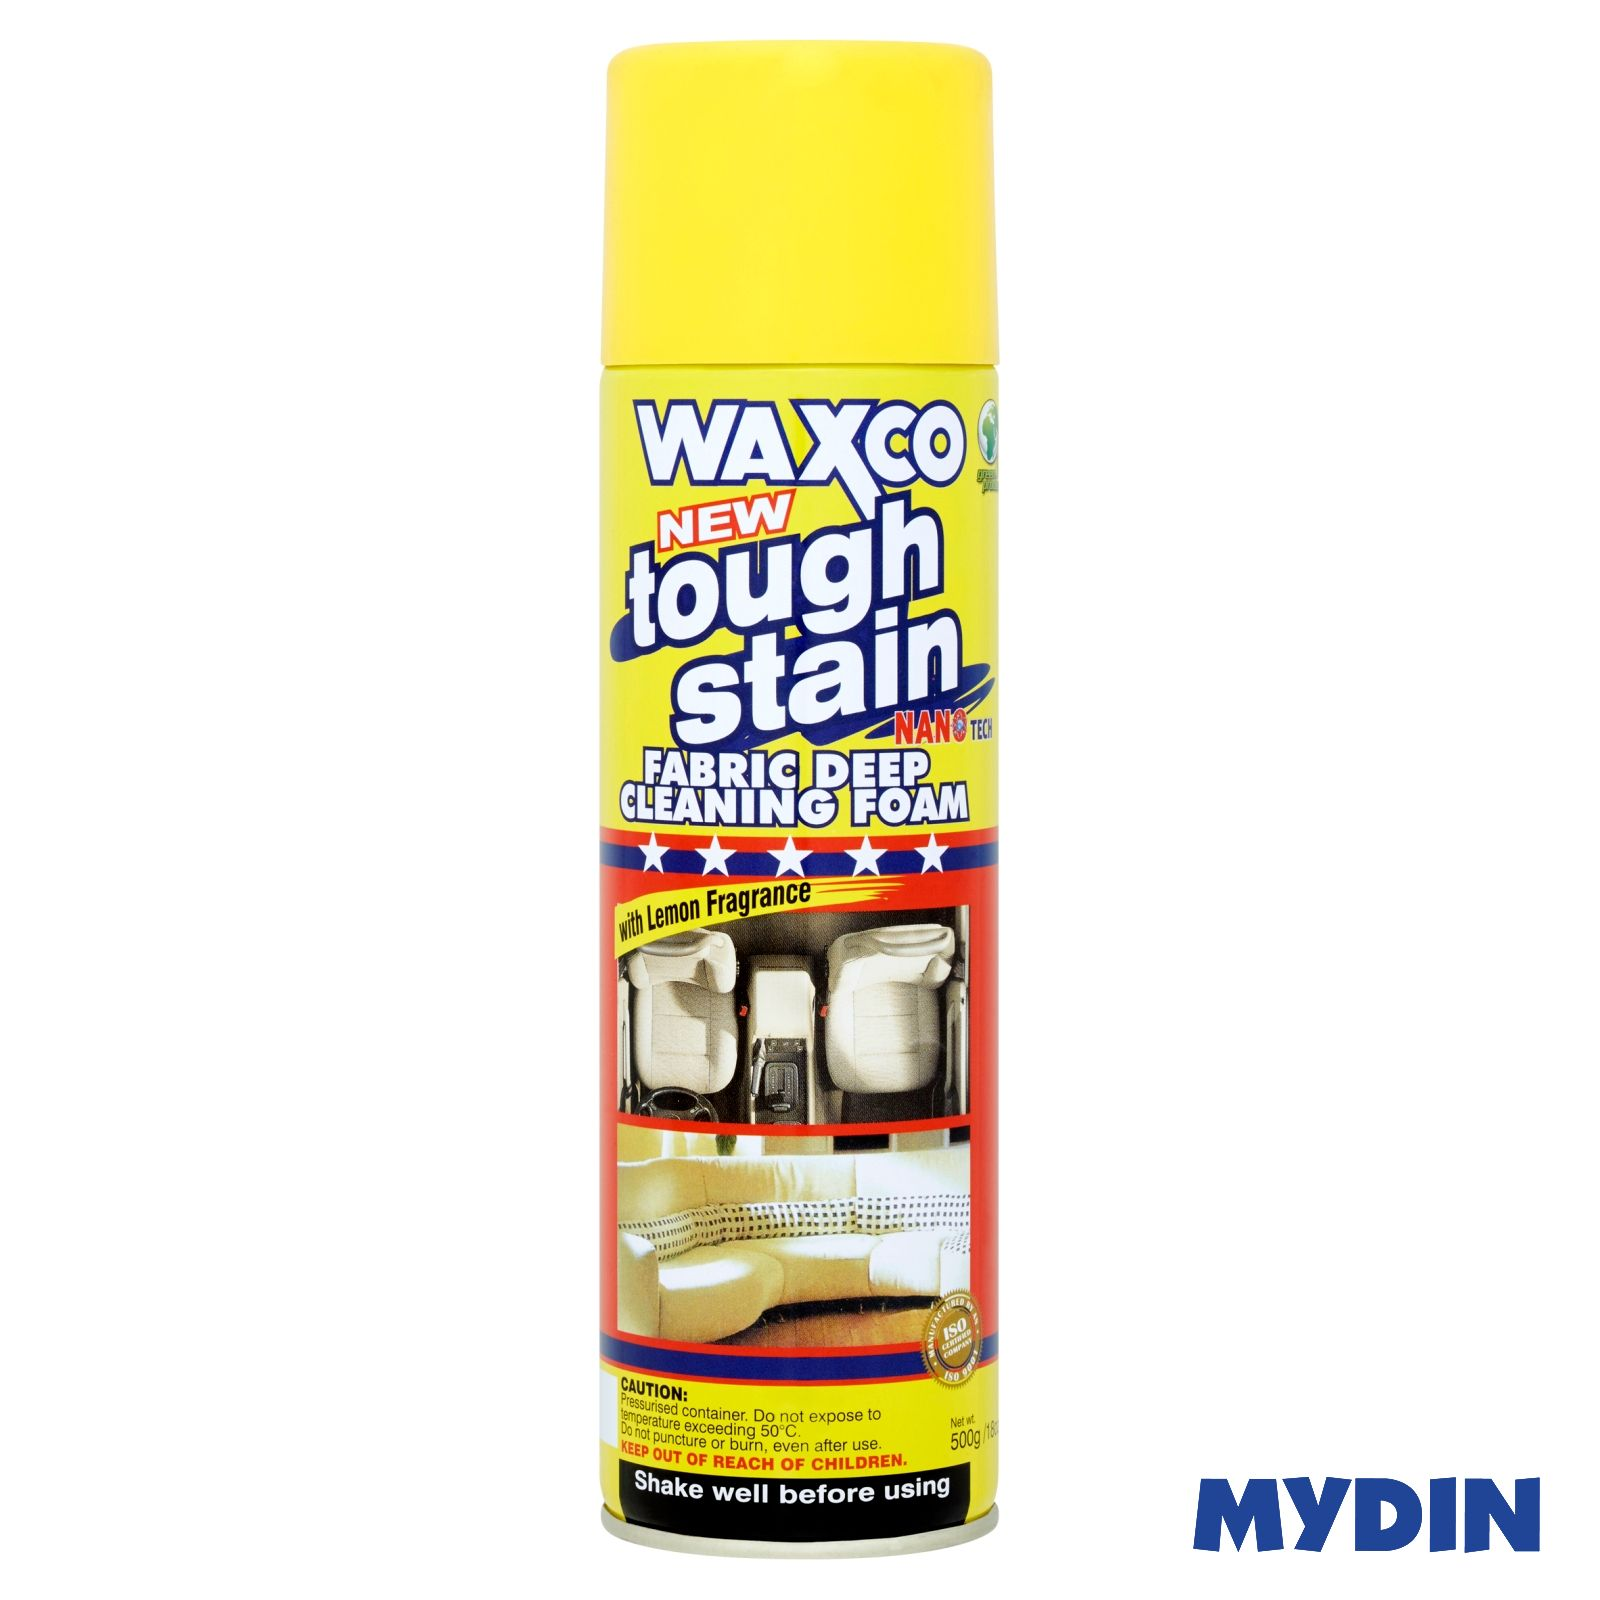 Waxco Tough Stain Fabric Deep Cleaning Foam with Lemon Fragrance (500g)